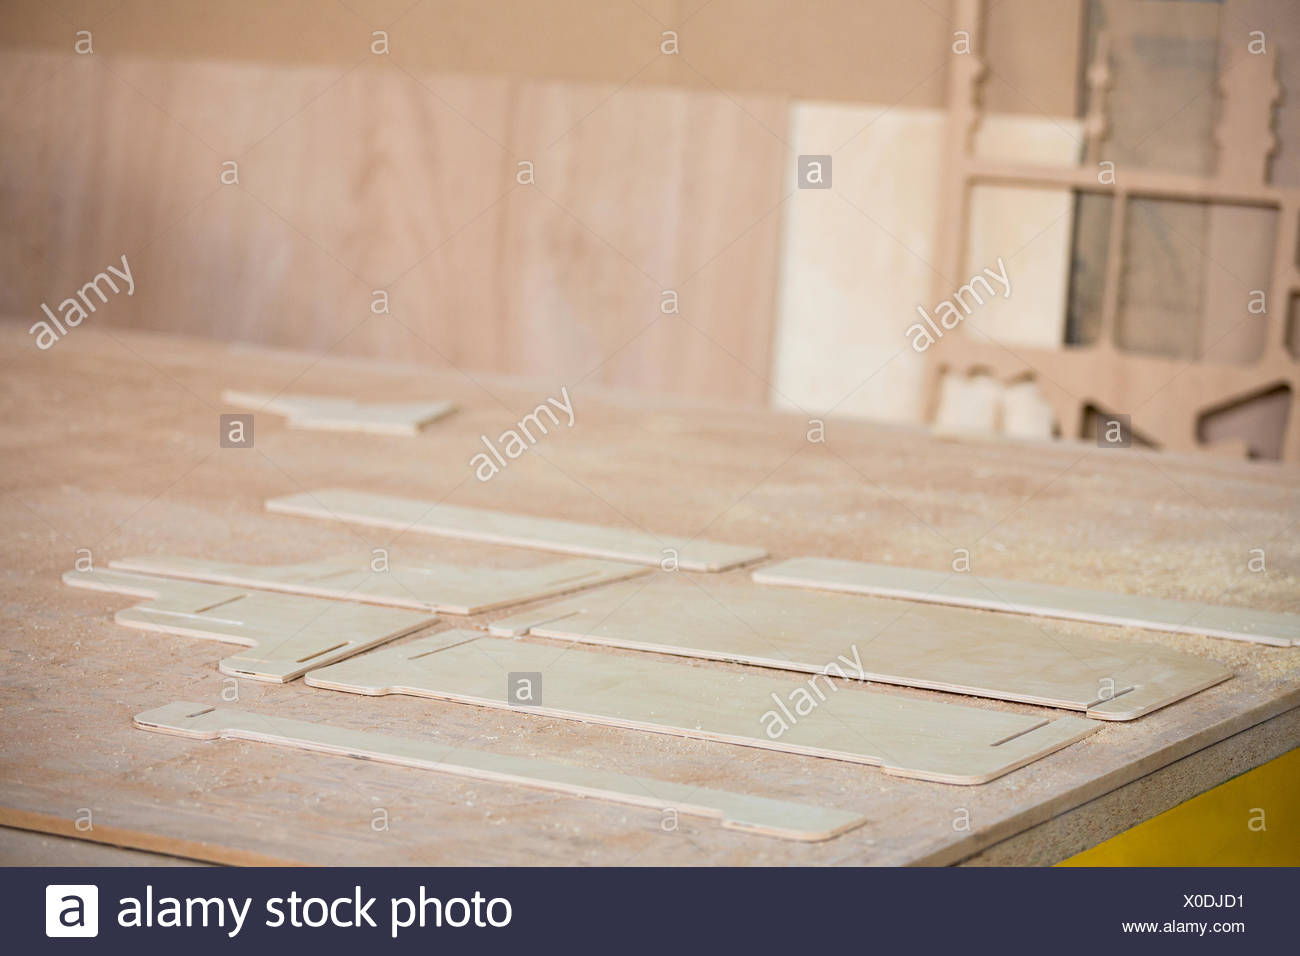 Sawing plank of wood - Stock Image